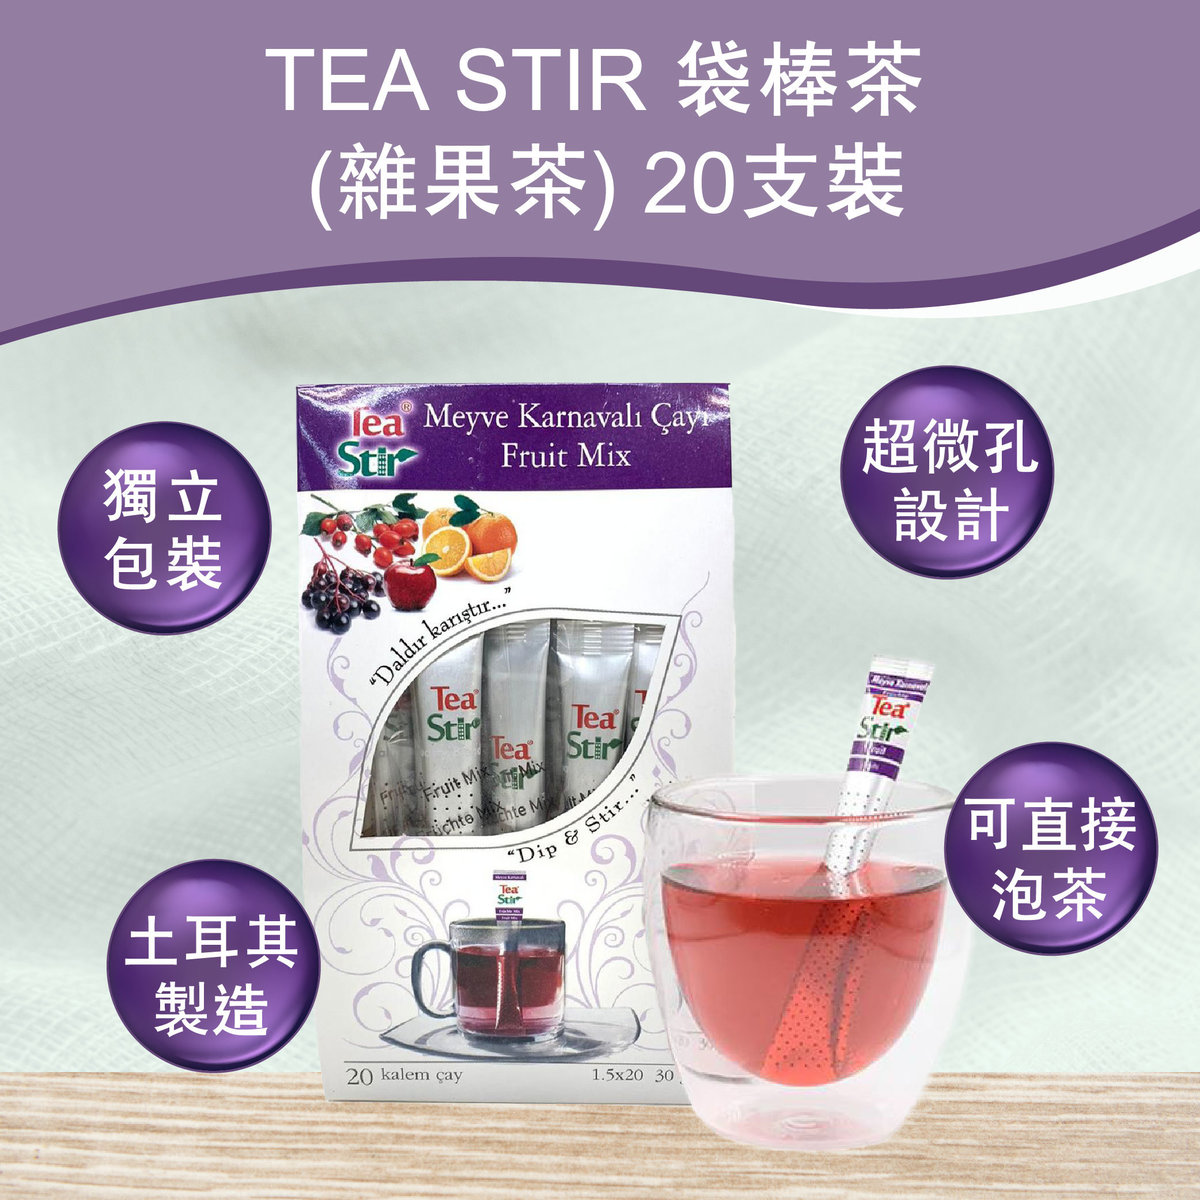 Tea Stir (Fruit Mix Tea) 20pcs 30g Tea Stick